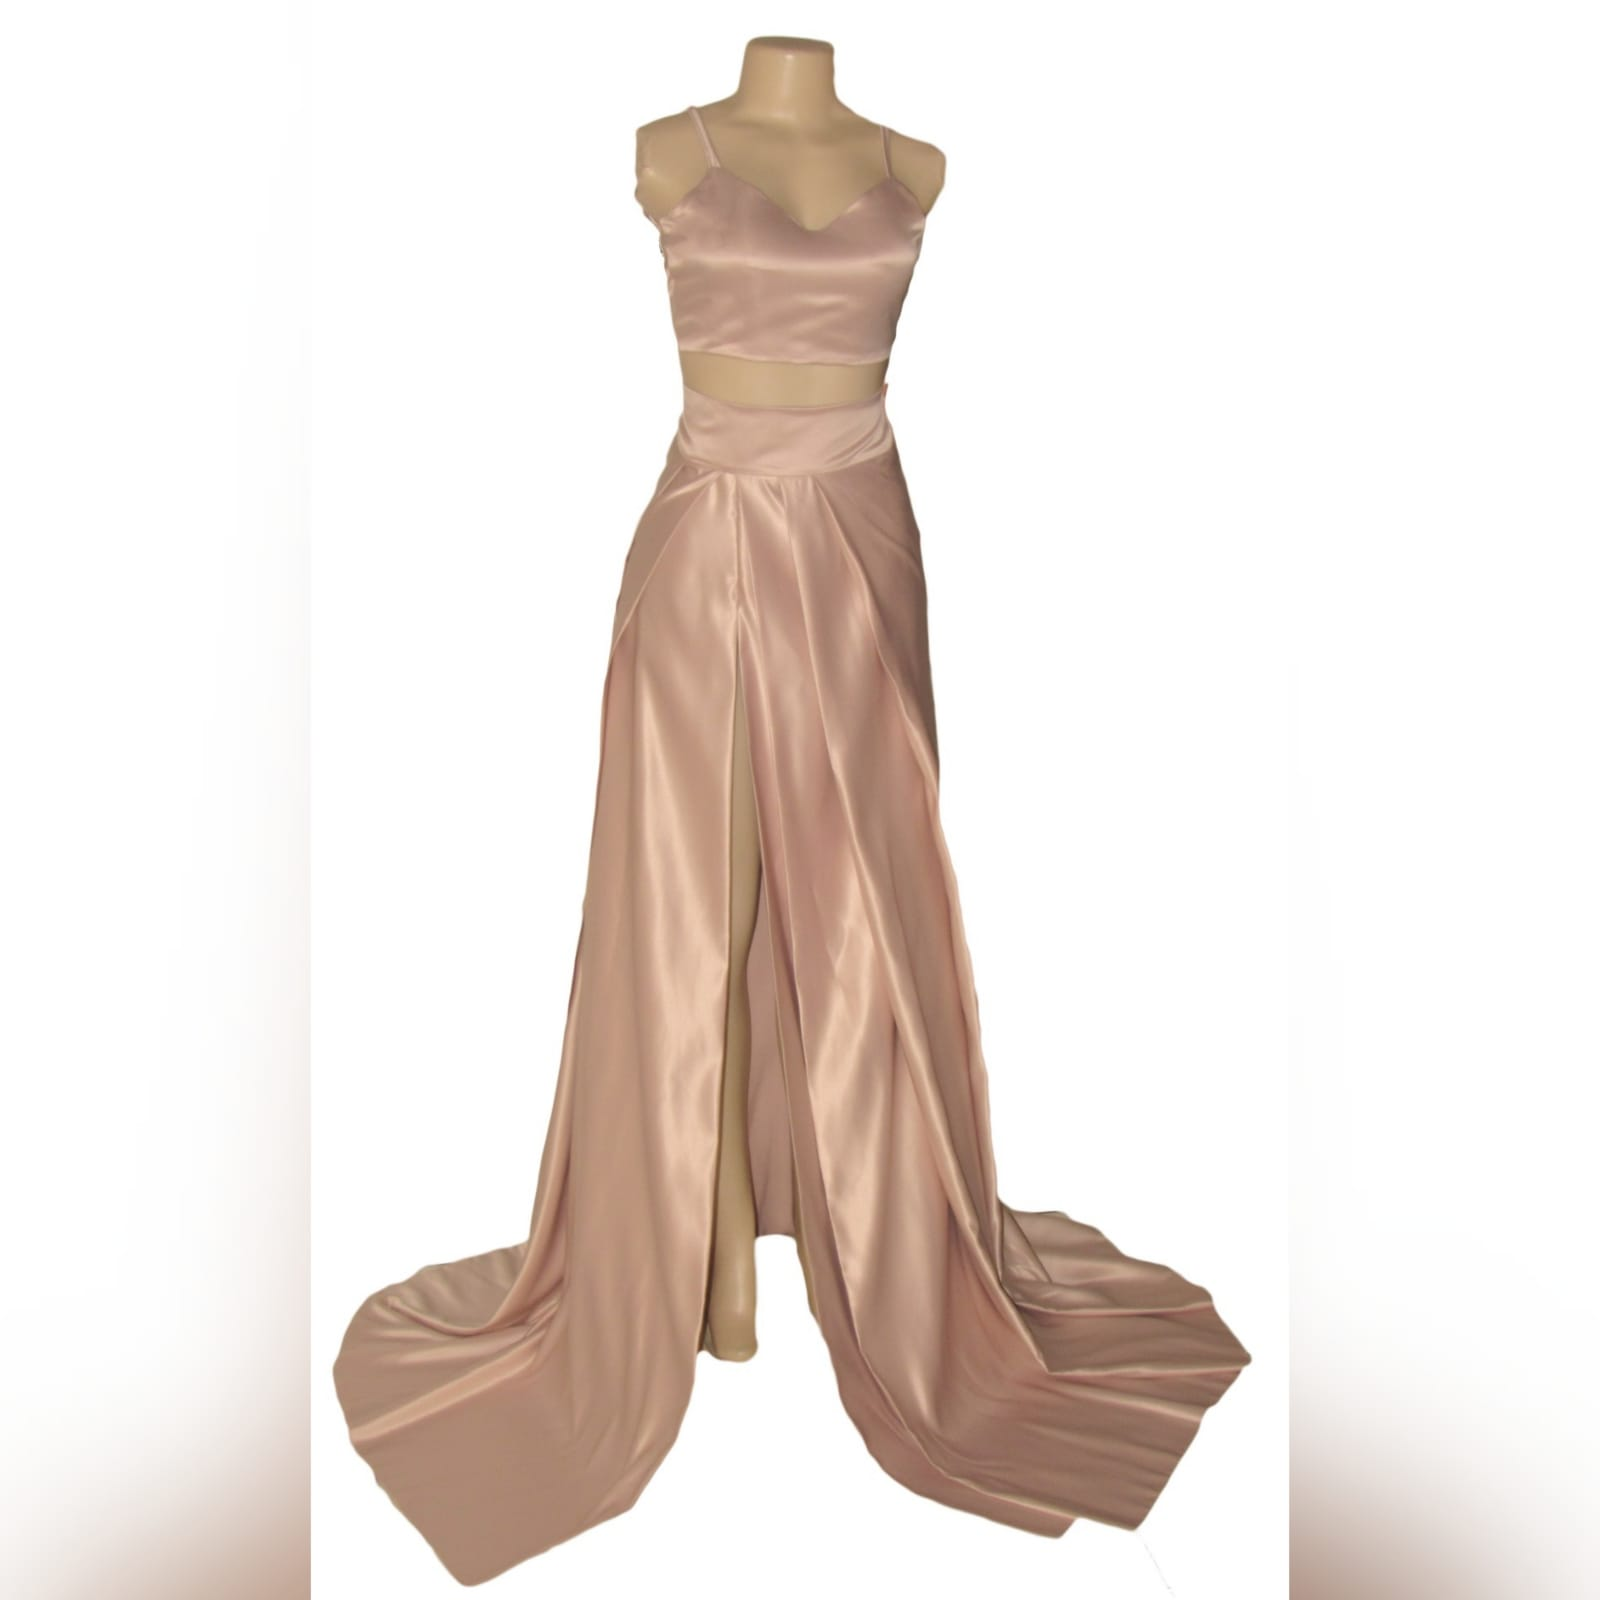 2 piece rose gold satin prom dress 4 2 piece rose gold satin prom dress, with a crop top, thin shoulder straps and a lace-up back. Pleated skirt with a high slit and a train.